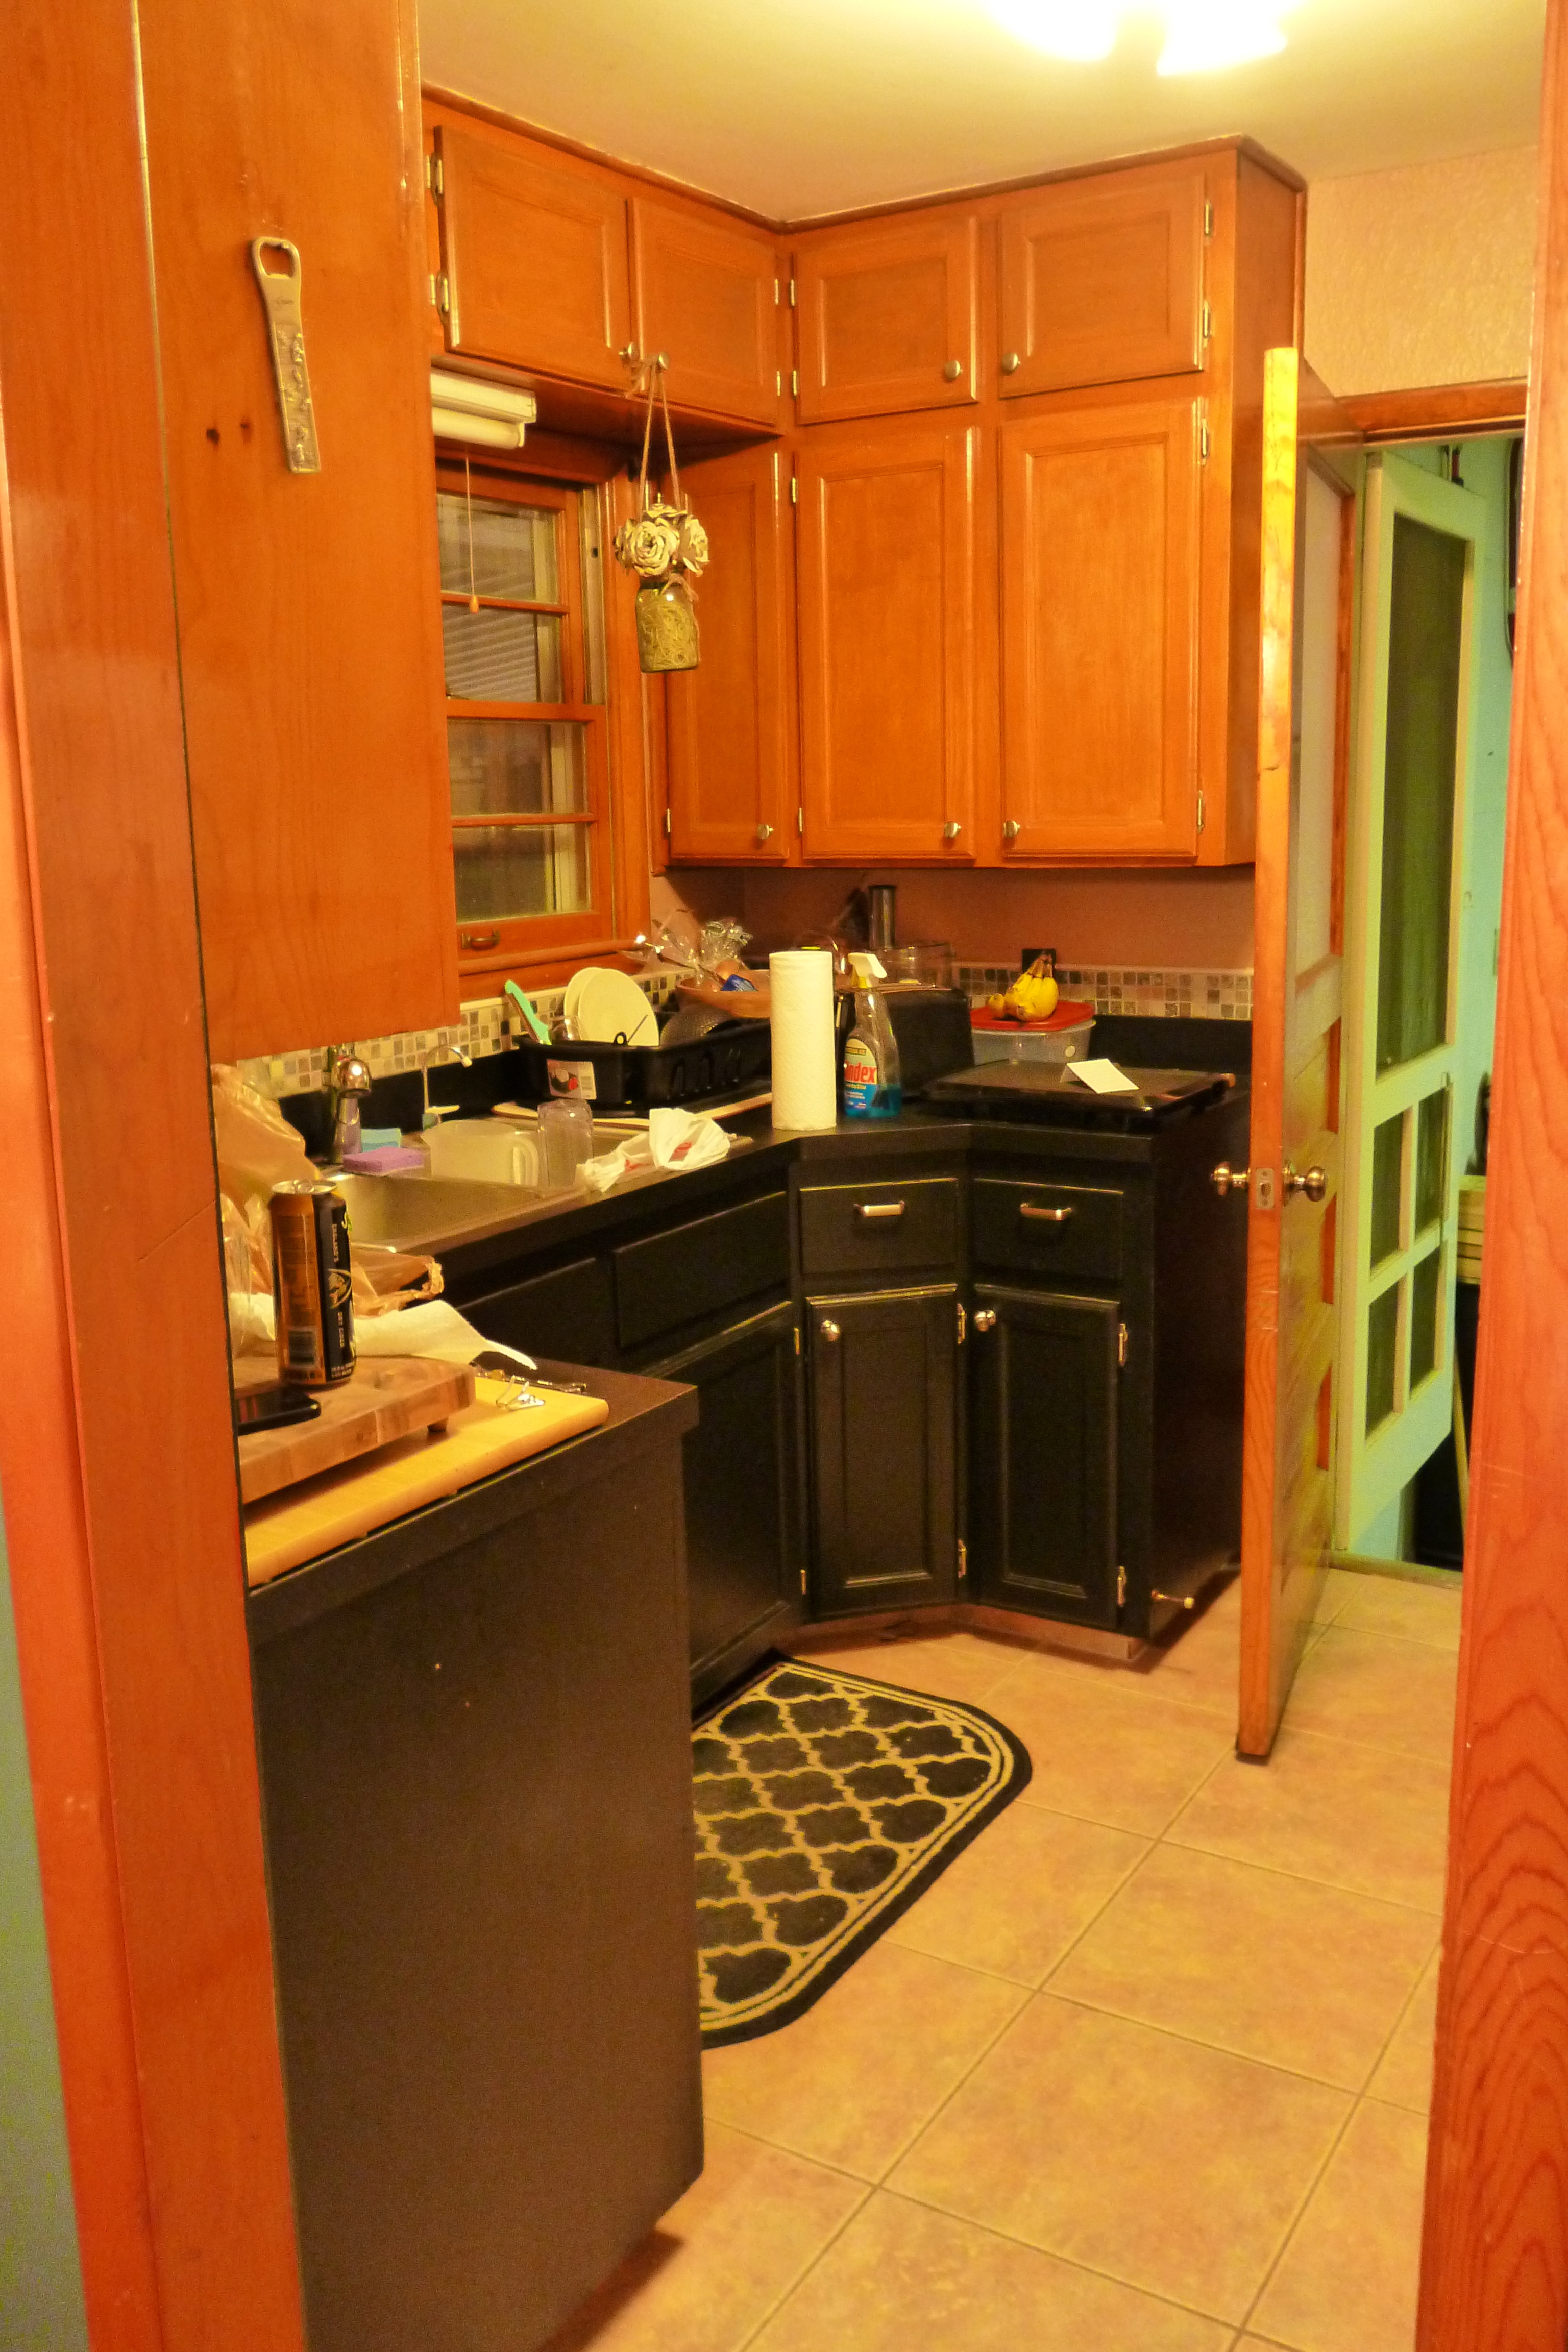 cabinets are black, the top cabinets are brown, the walls? mauve